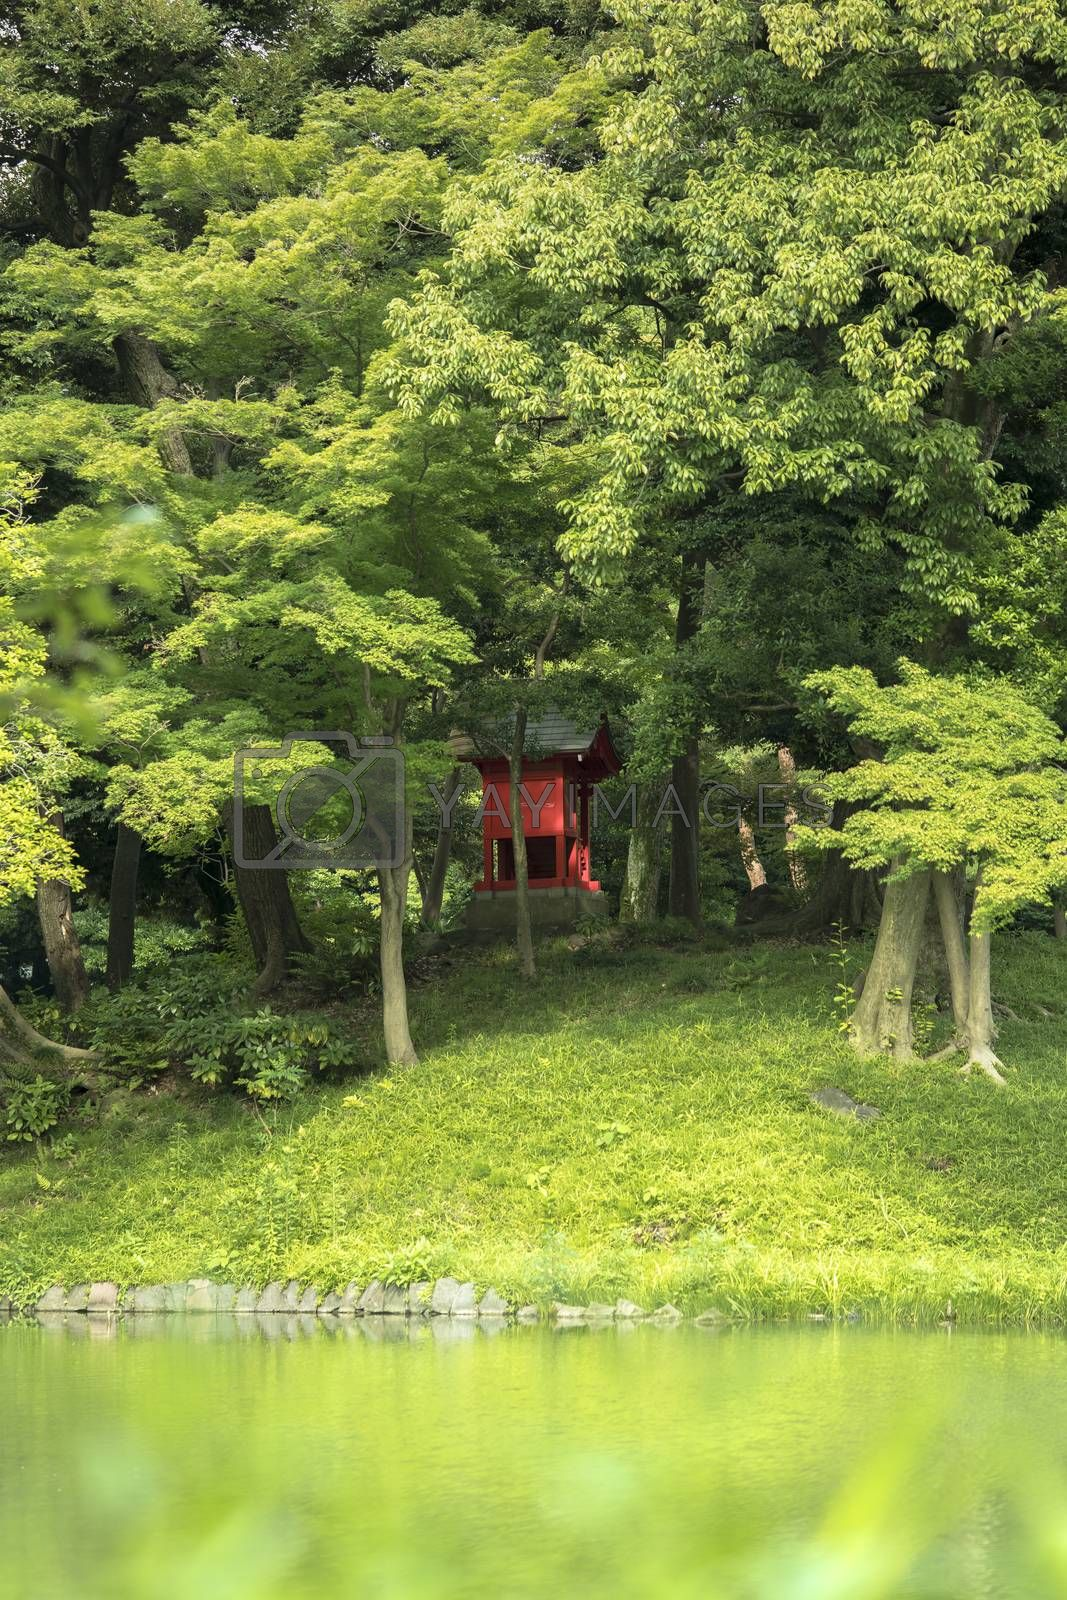 Small Shrine Vermilion Red Shinto located on the Osensui Lake islet of Koishikawa Korakuen Park in Bunkyo Ward, Tokyo. This small, heavily forested island is an evocation of the mythical Mount Horai very important in Chinese mythology.